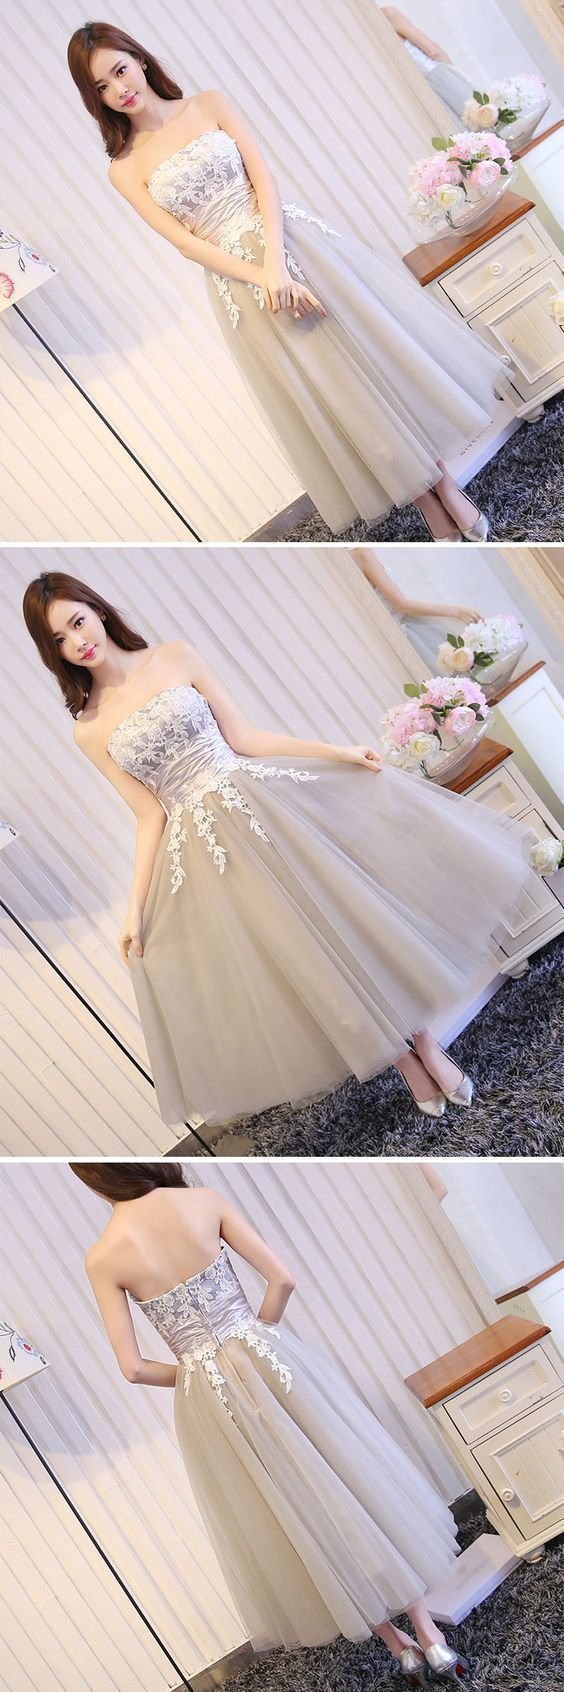 Strapless Tulle Appliques Lace Prom Dress, Elegant Short Homecoming Dress